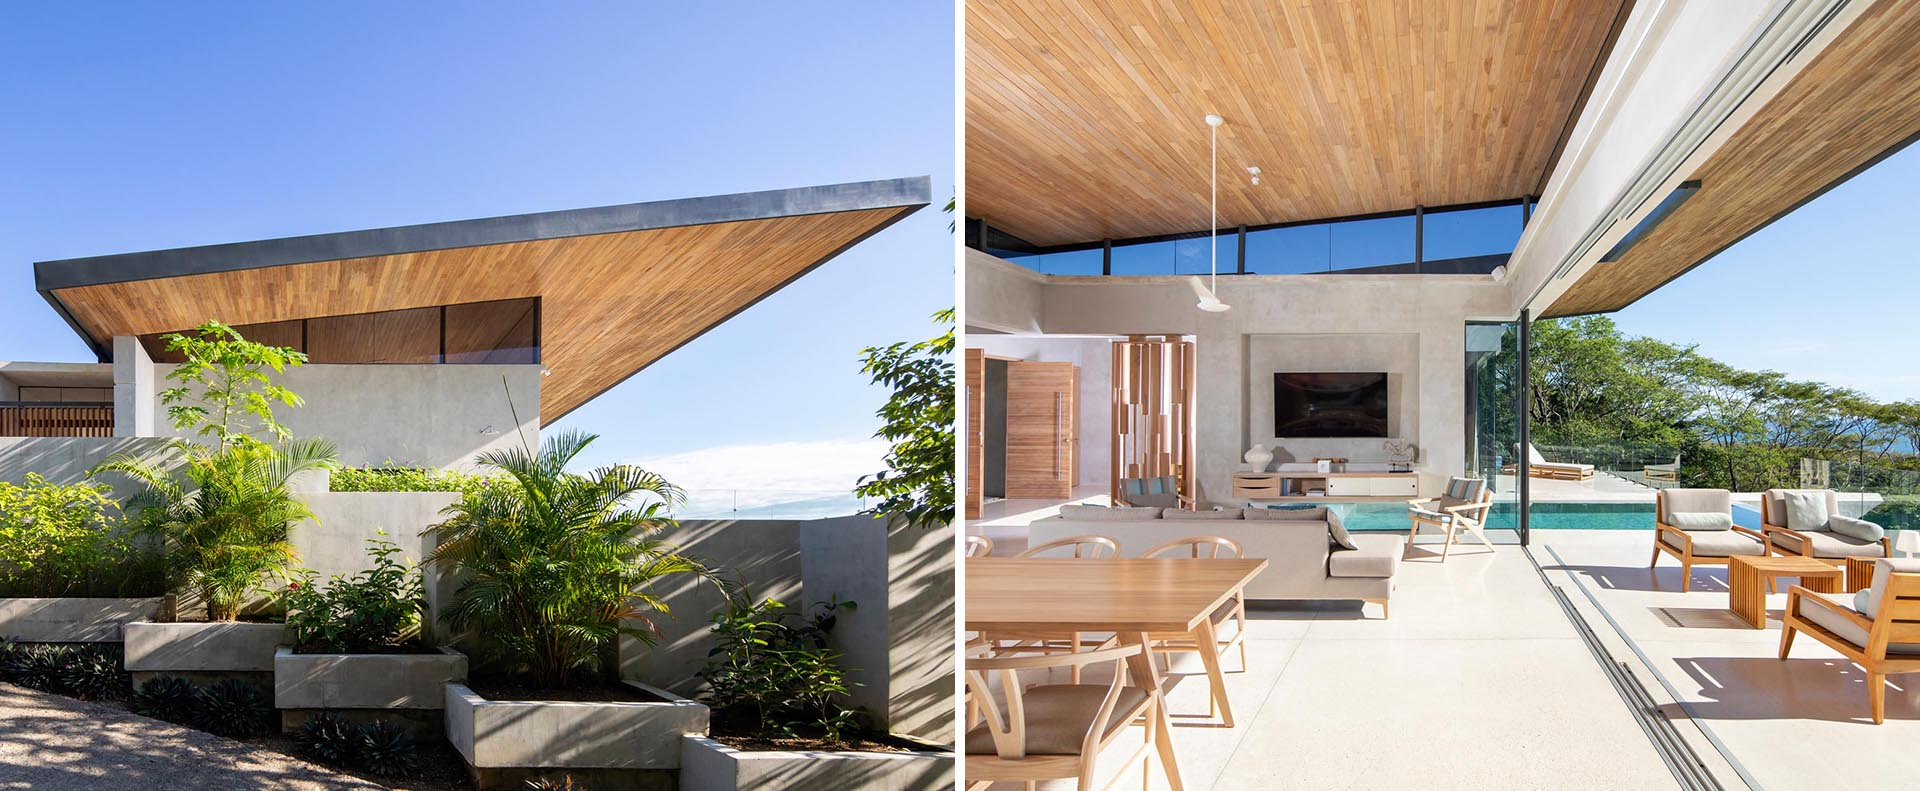 The sweeping and expansive angled roof of this modern home, which is lined with wood, allows for cross ventilation during the rainy and humid months.